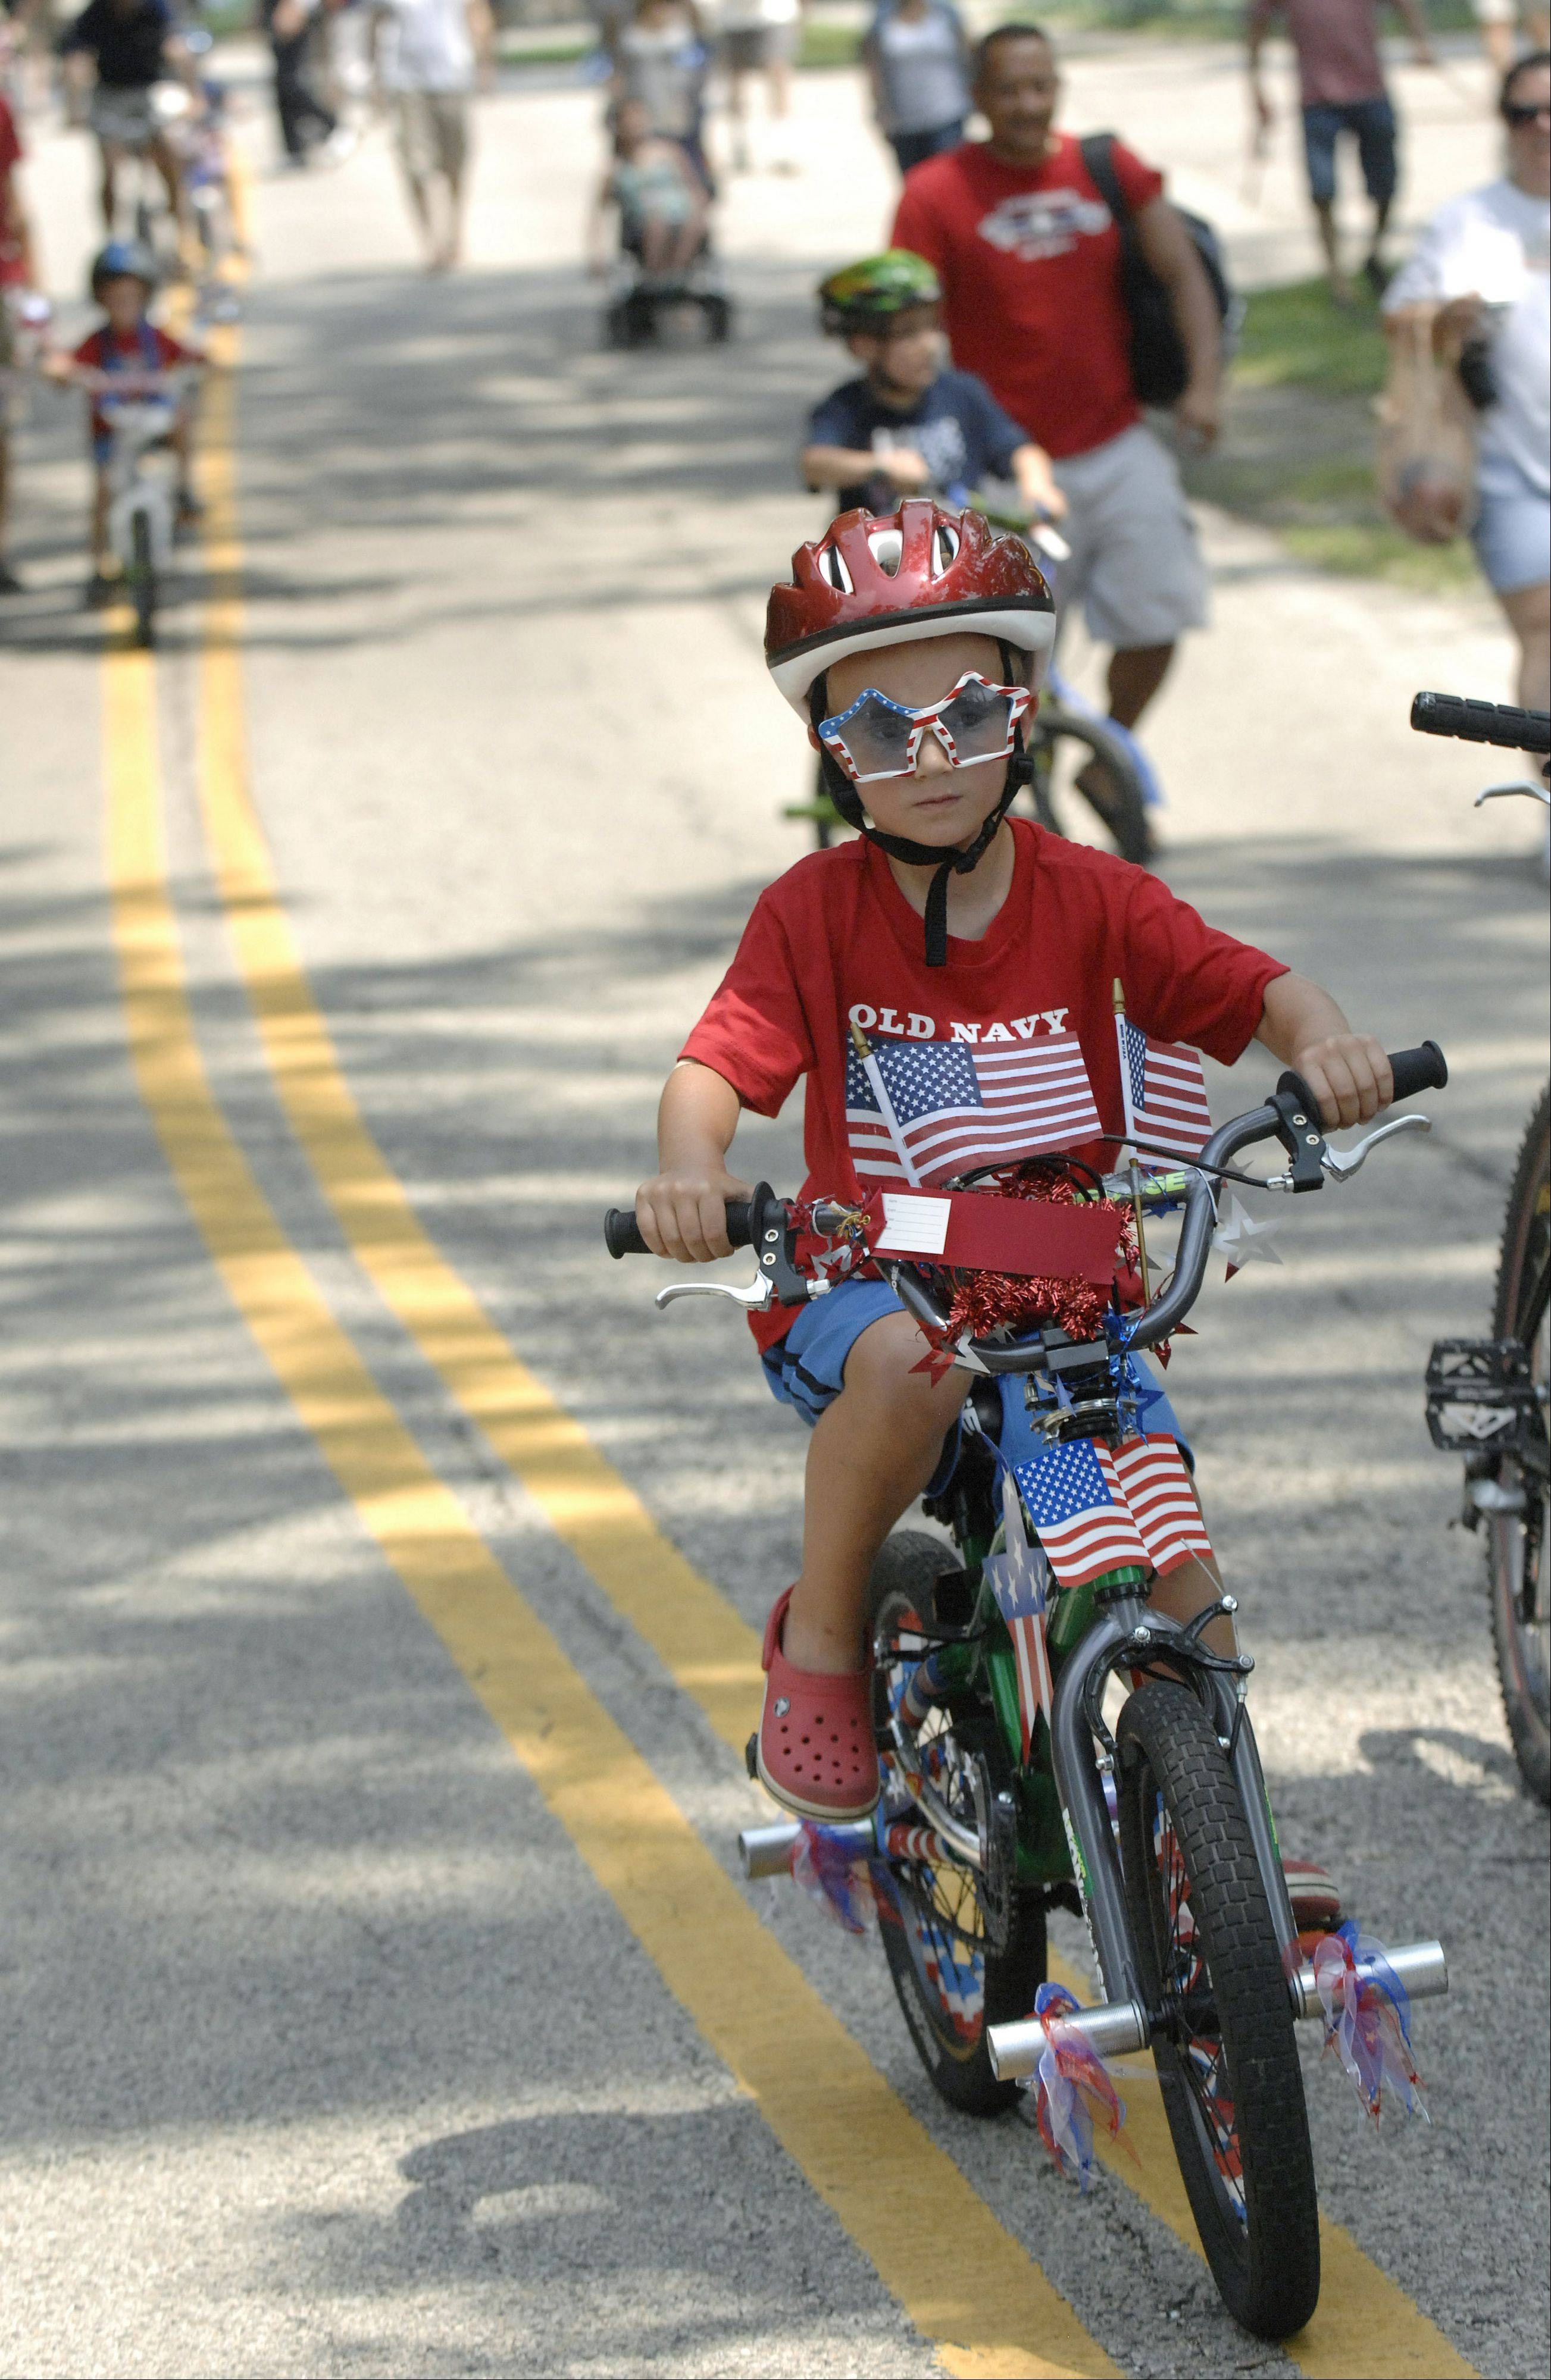 Charlie Carnes of Crystal Lake parades down the path on his decorated bike in the kids bike parade at 2011's Lakeside Festival. Another bike parade will be held Saturday on the third day of this year's fest at Lakeside Legacy Arts Park in Crystal Lake.